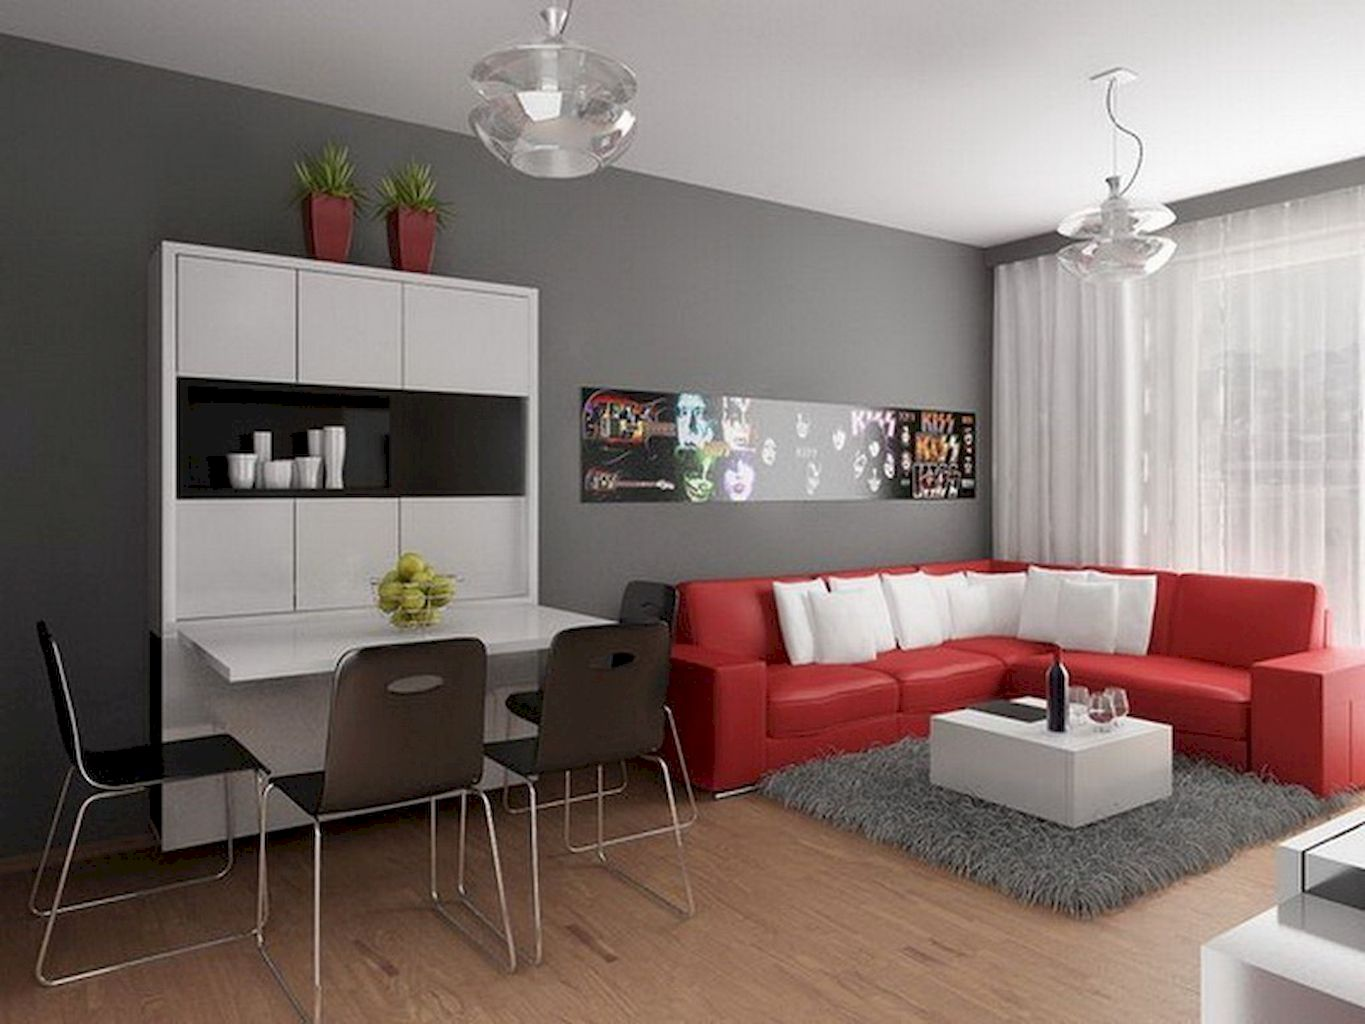 DIY Apartment Living Room Layout and Decor Part 5